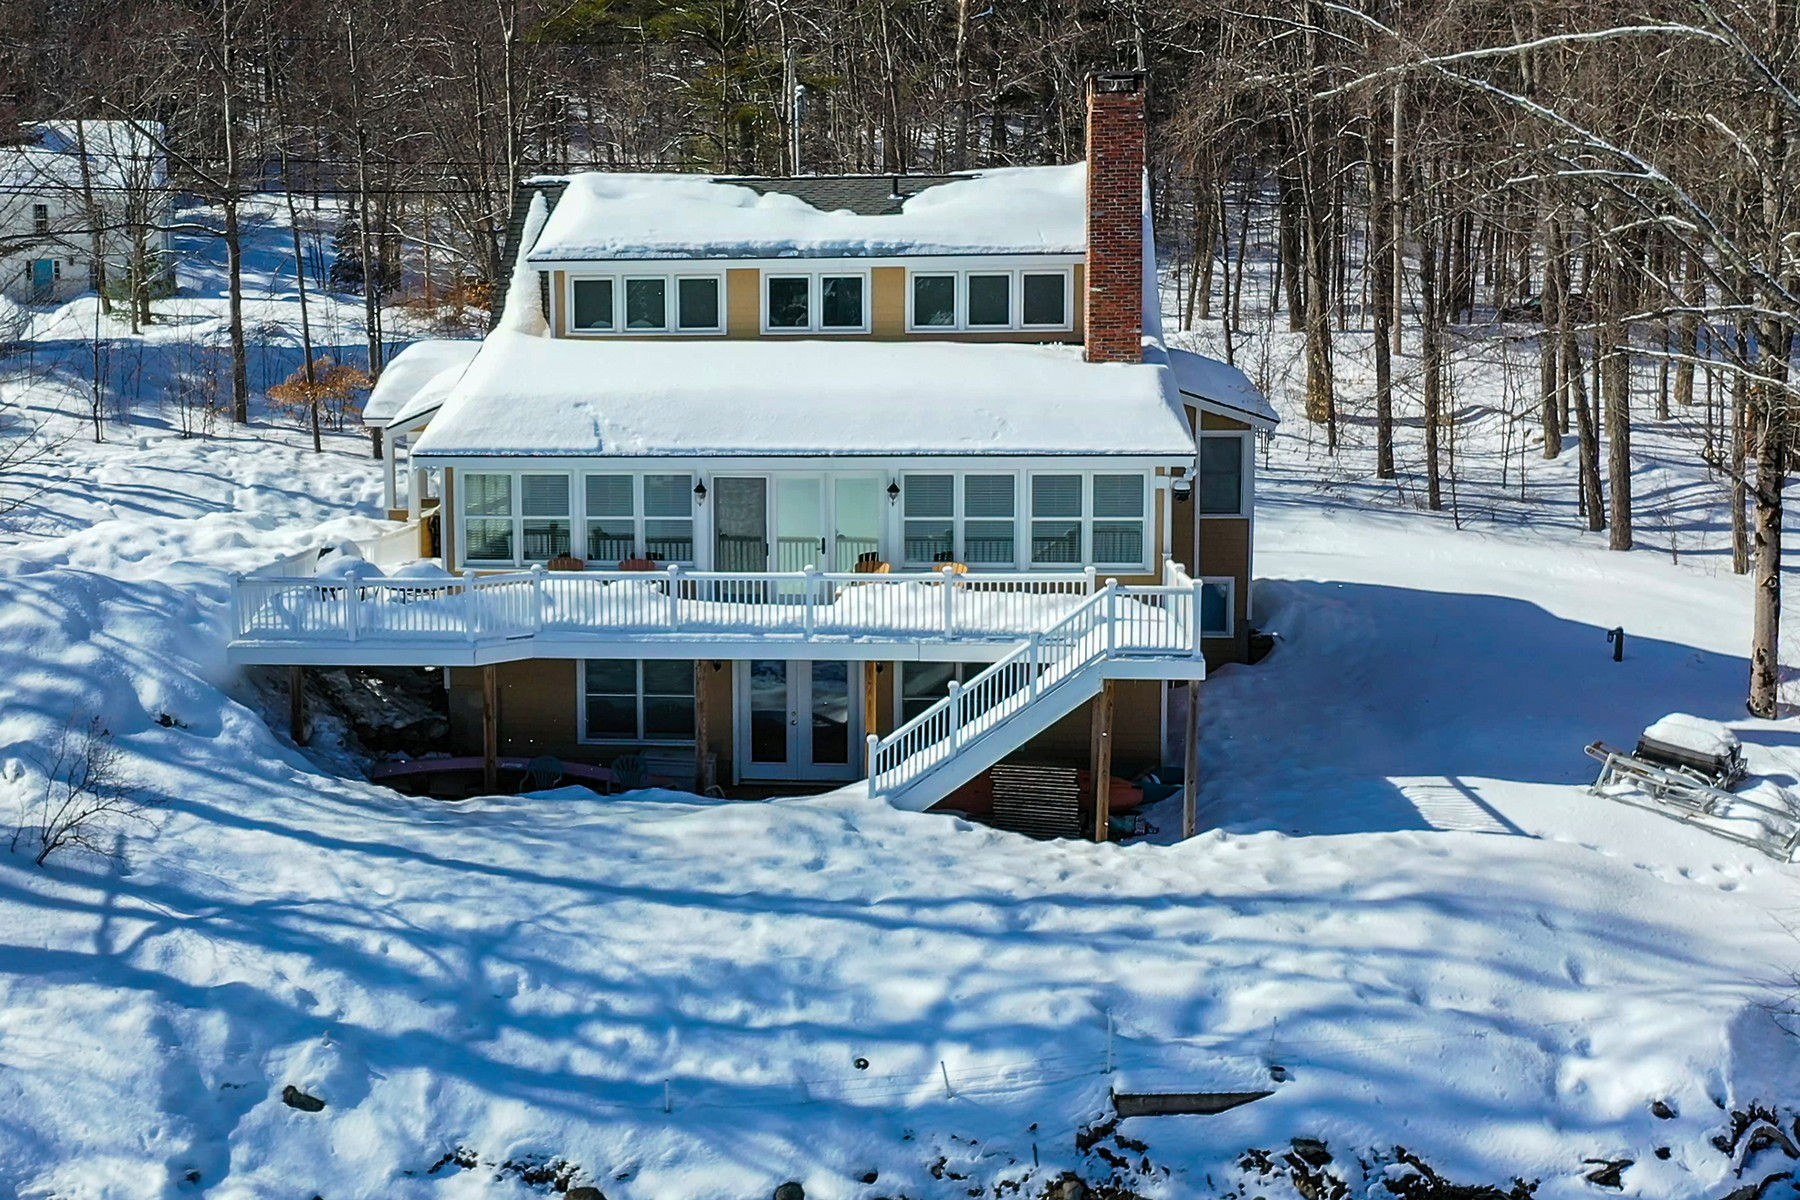 Single Family Home for Sale at 200+ Feet of Frontage on Lake Rescue 1450 Route 100 North Ludlow, Vermont 05149 United States